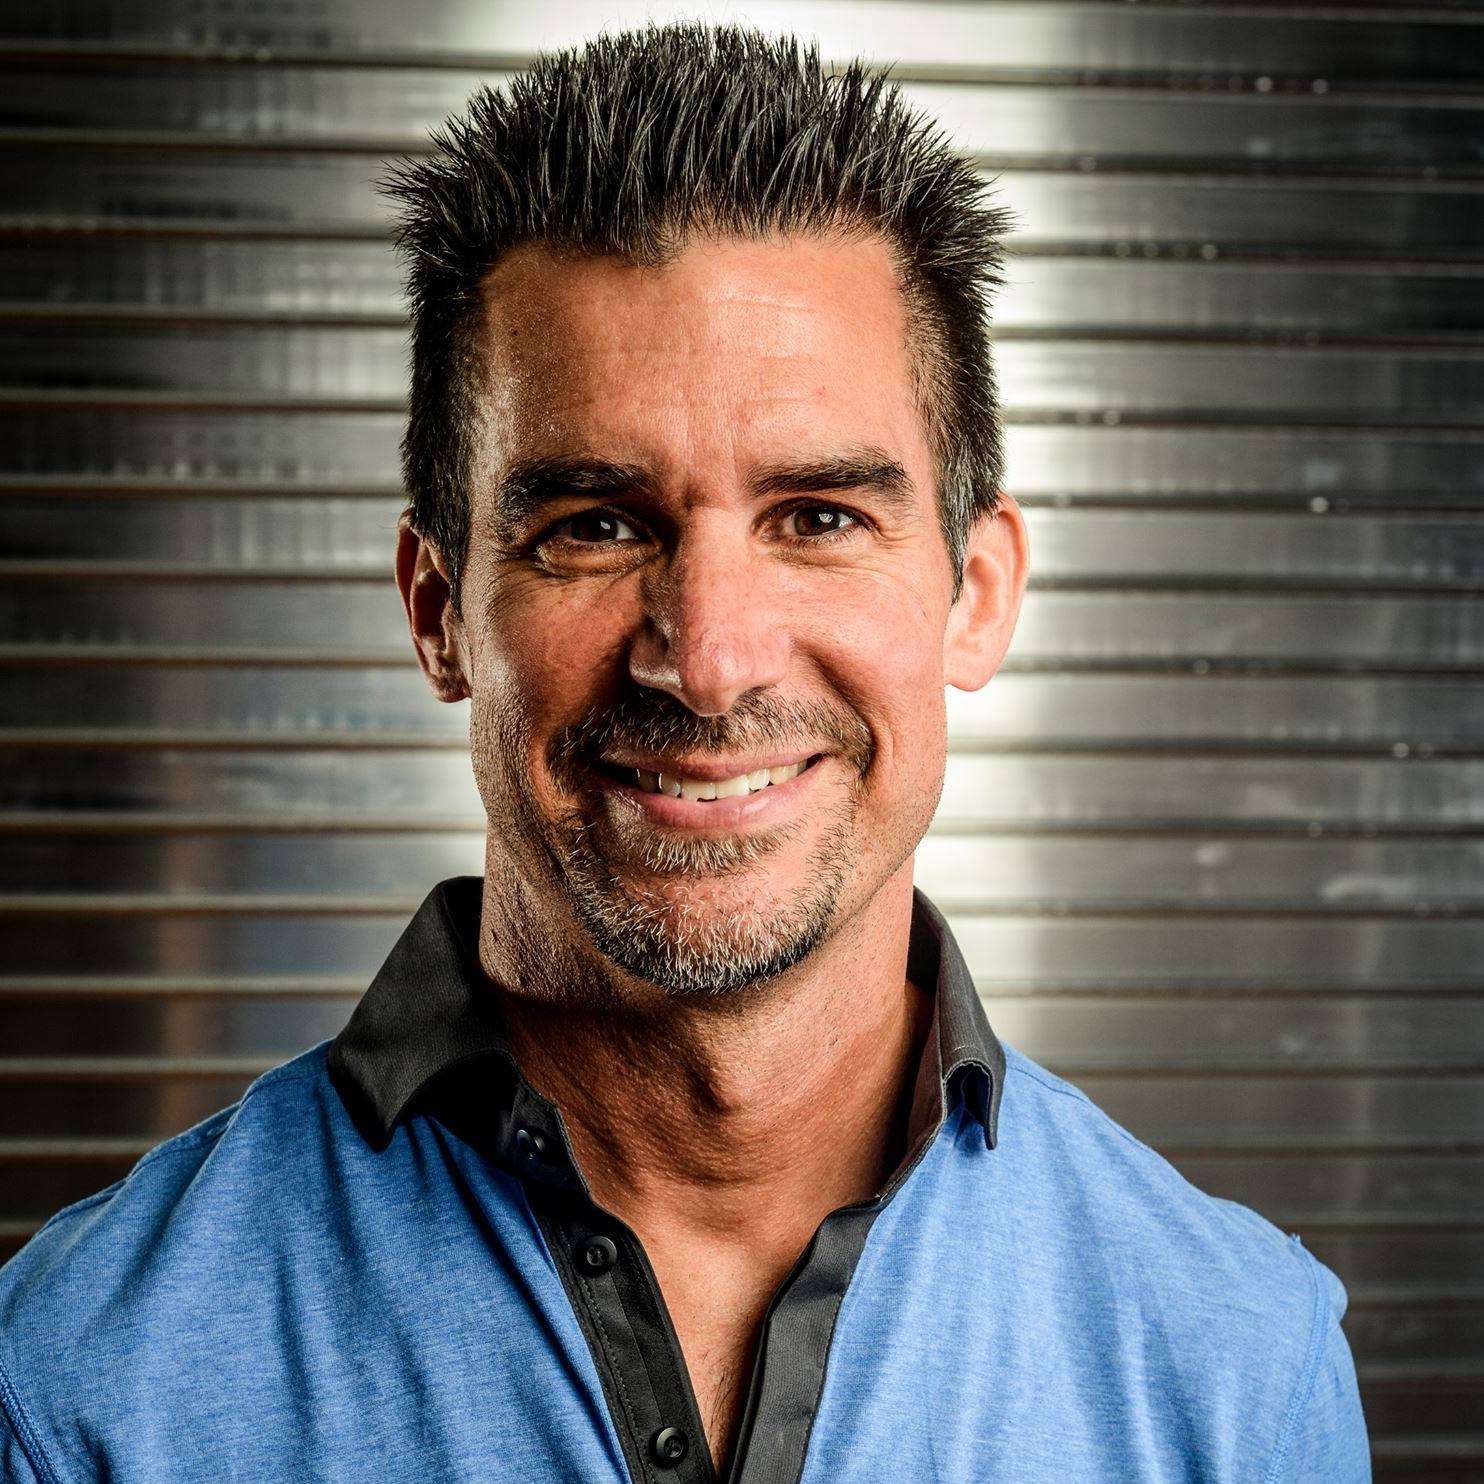 Jim Cotta   jimcotta.com  N.S.C.A Strength & Conditioning Coach  Titleist Golf Performance Certified  Author  ★Former strength coach for the Los Angeles Lakers for 7 years (including their World Championship three-peat) and has trained Shaquille O'Neal, Karl Malone, Kobe Bryant, Dennis Rodman, Mitch Richmond, Eddie Jones, and others.